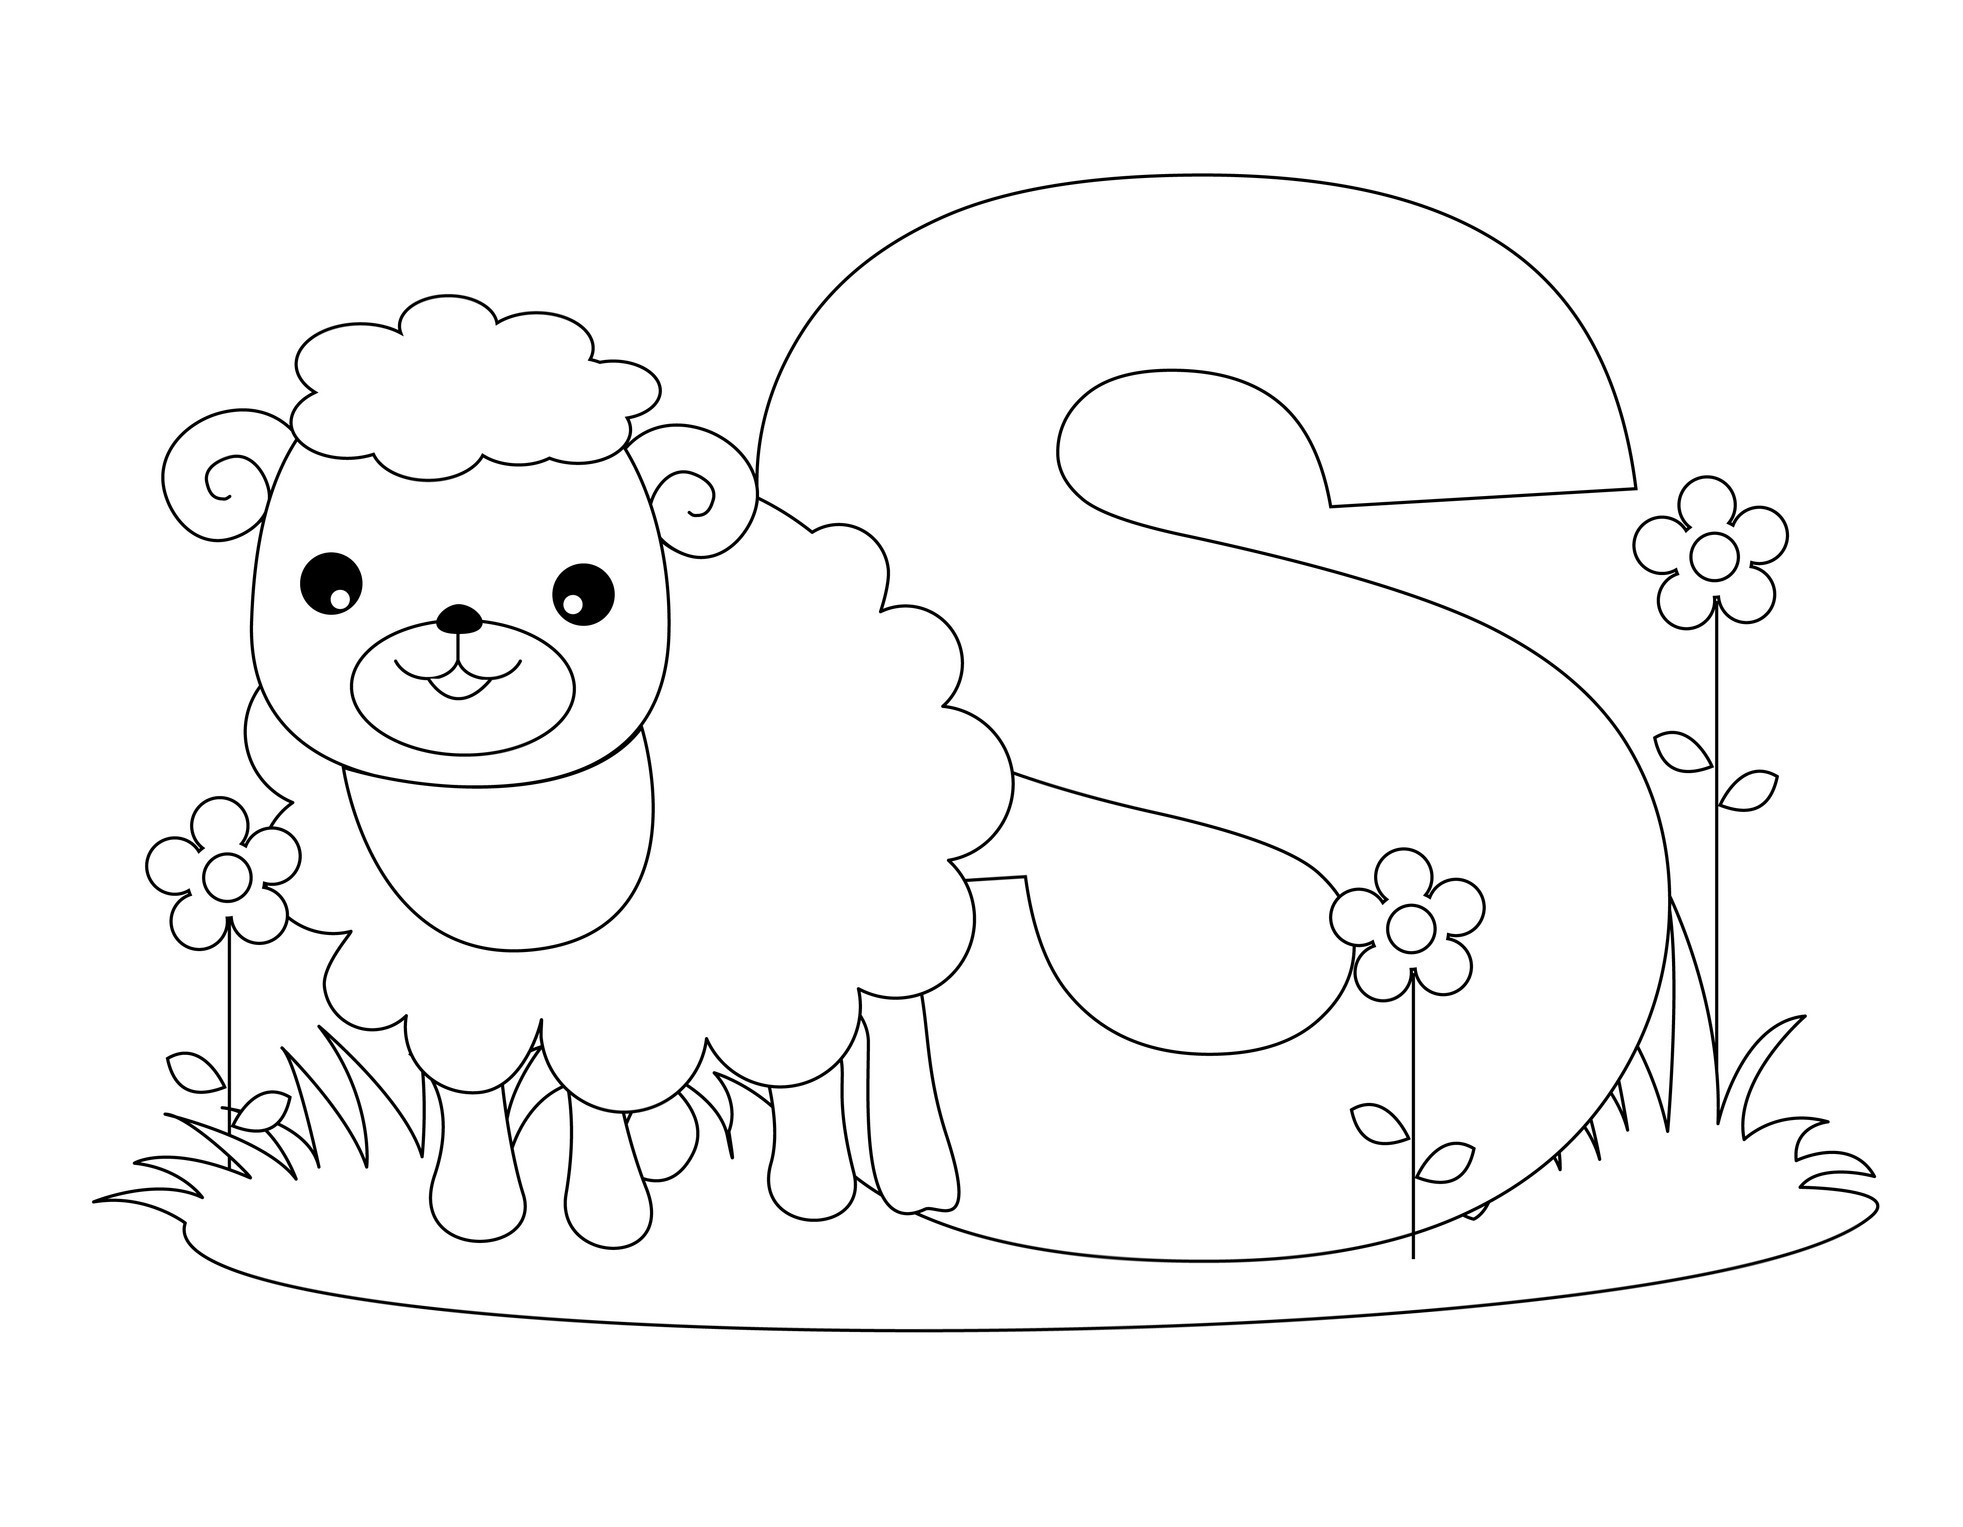 Letters Coloring Pages For Kids  Free Printable Alphabet Coloring Pages for Kids Best